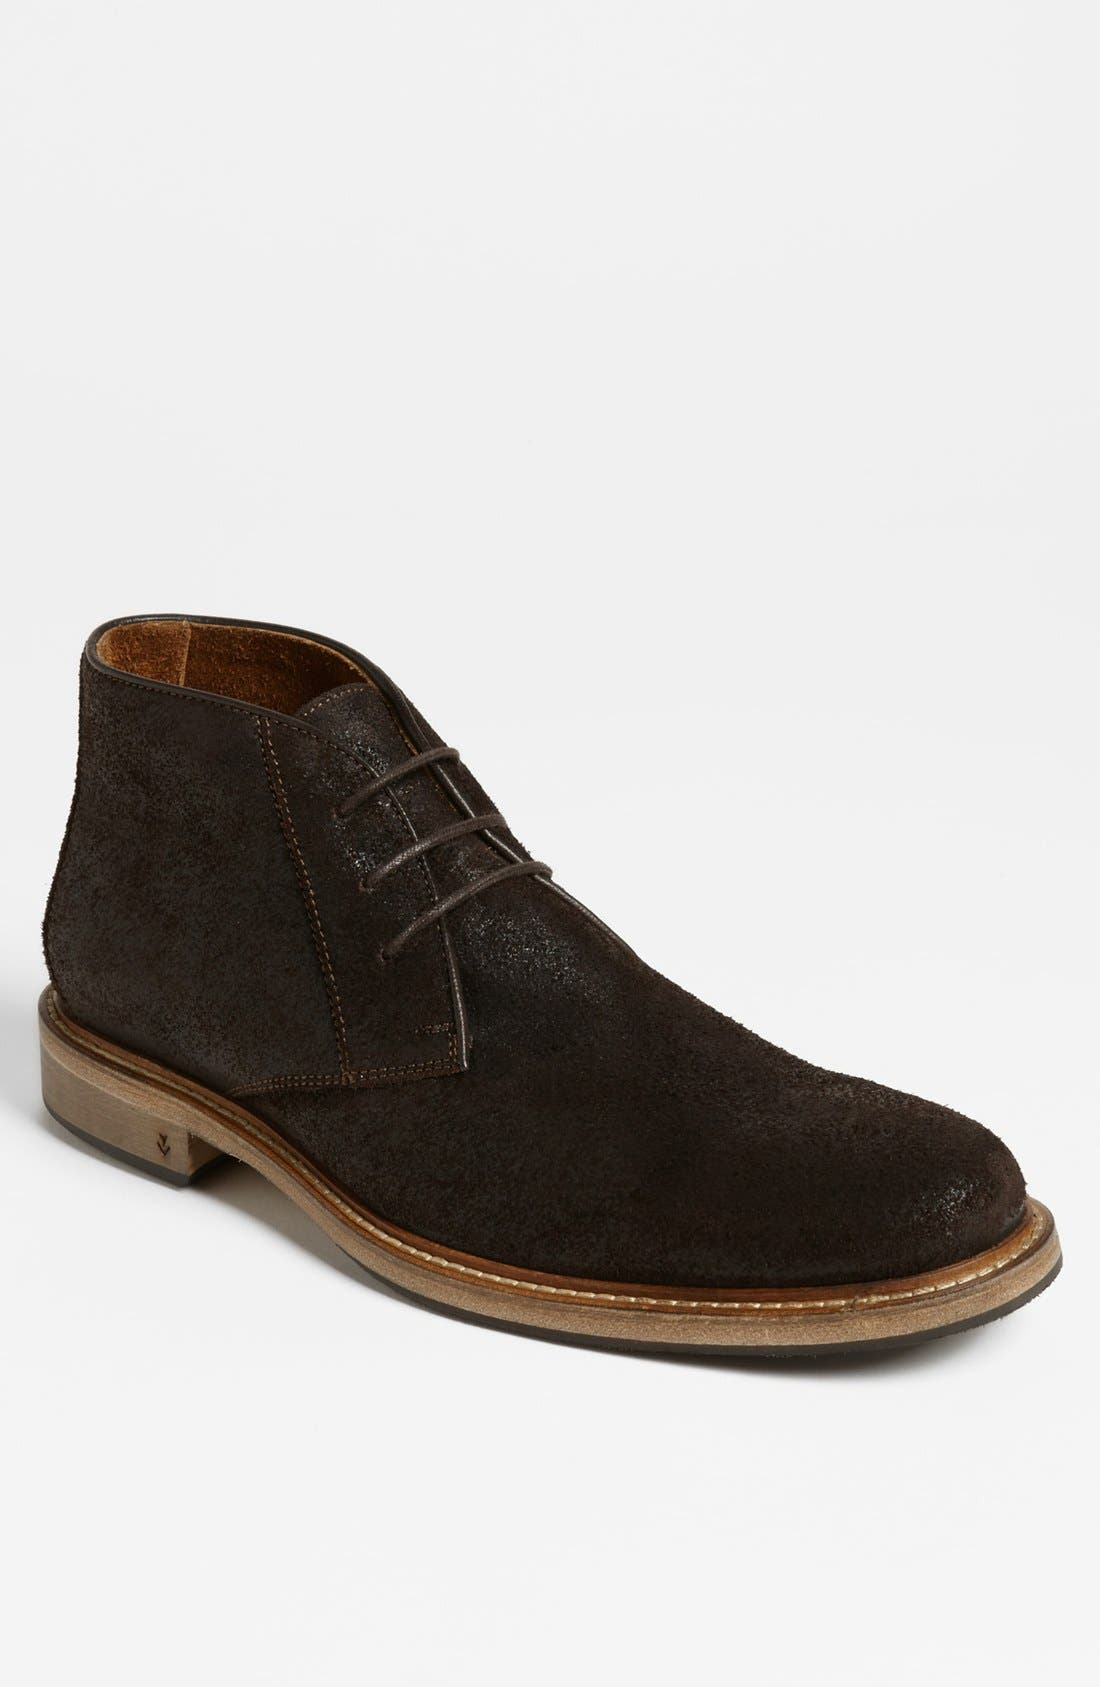 Alternate Image 1 Selected - John Varvatos Collection 'College' Chukka Boot